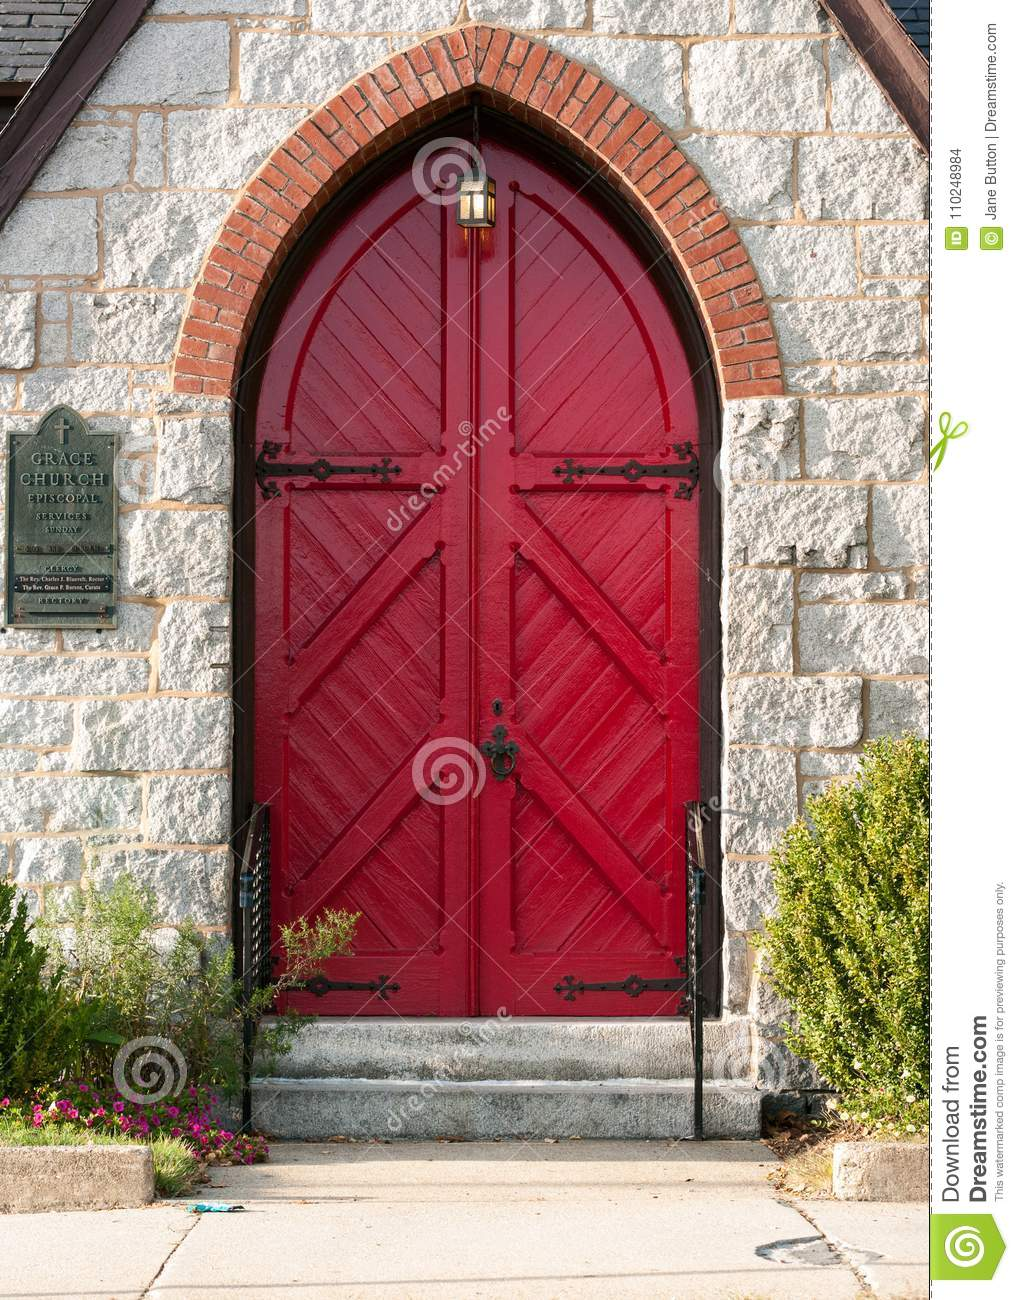 Arched Doorway Of An Episcopal Church Stock Photo Image Of Stone